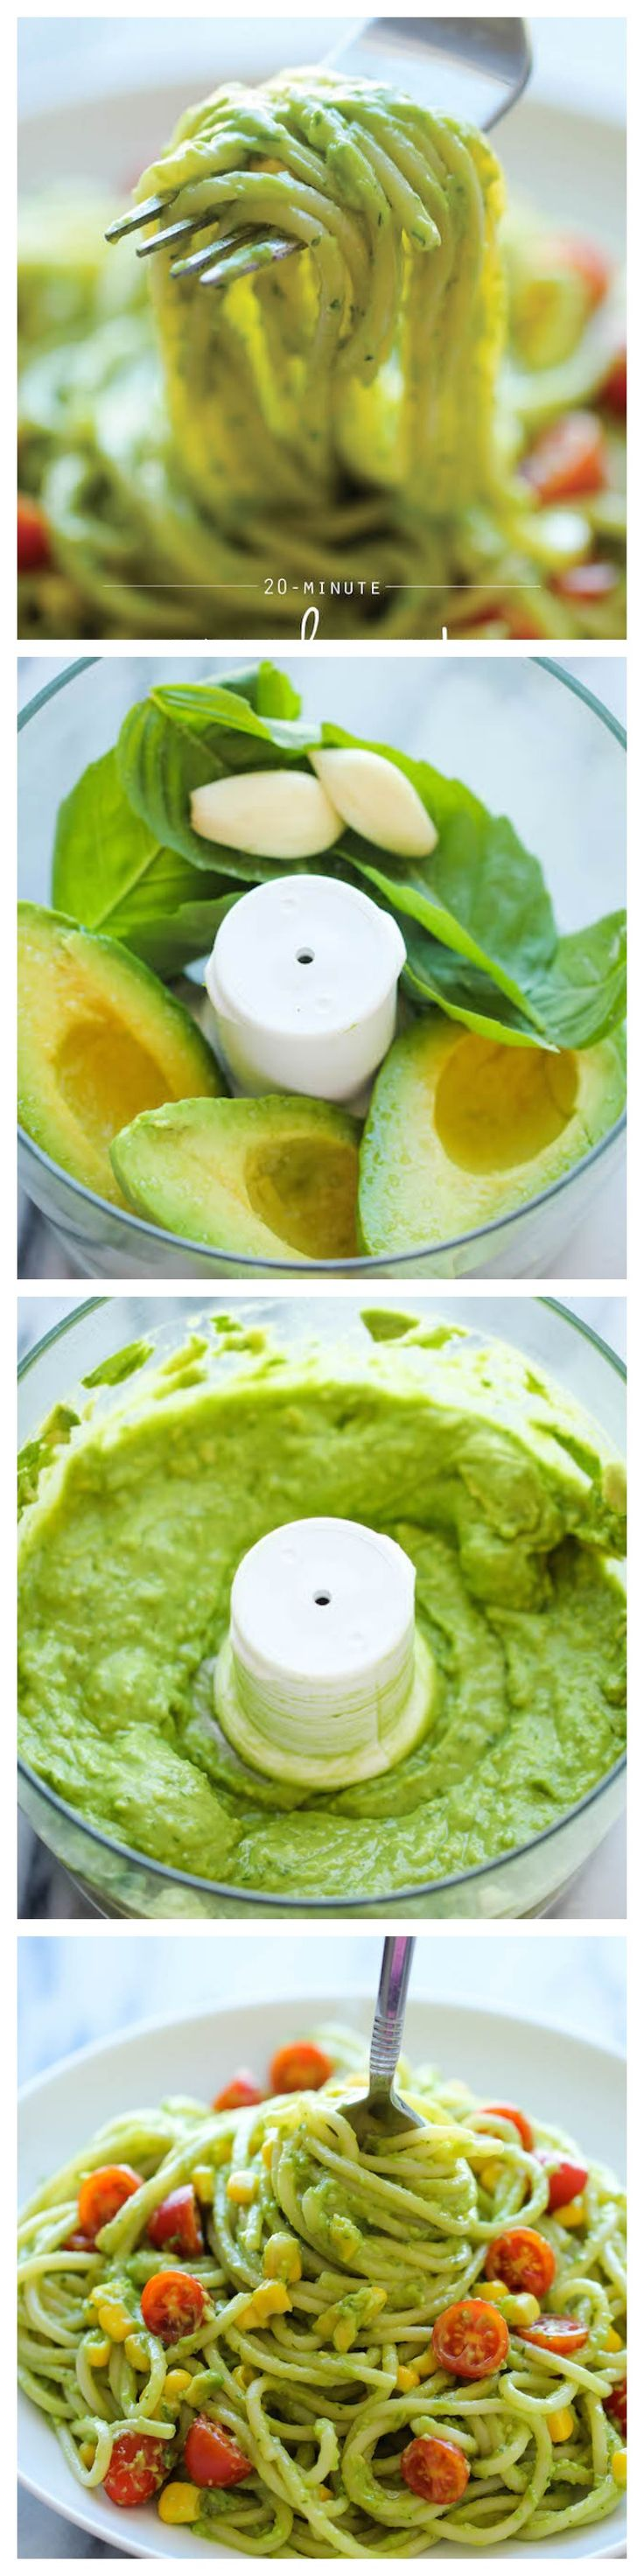 Healthy Recipe | Avocado Pasta sauce. Put on zucchini noodles for quick low carb dinner.